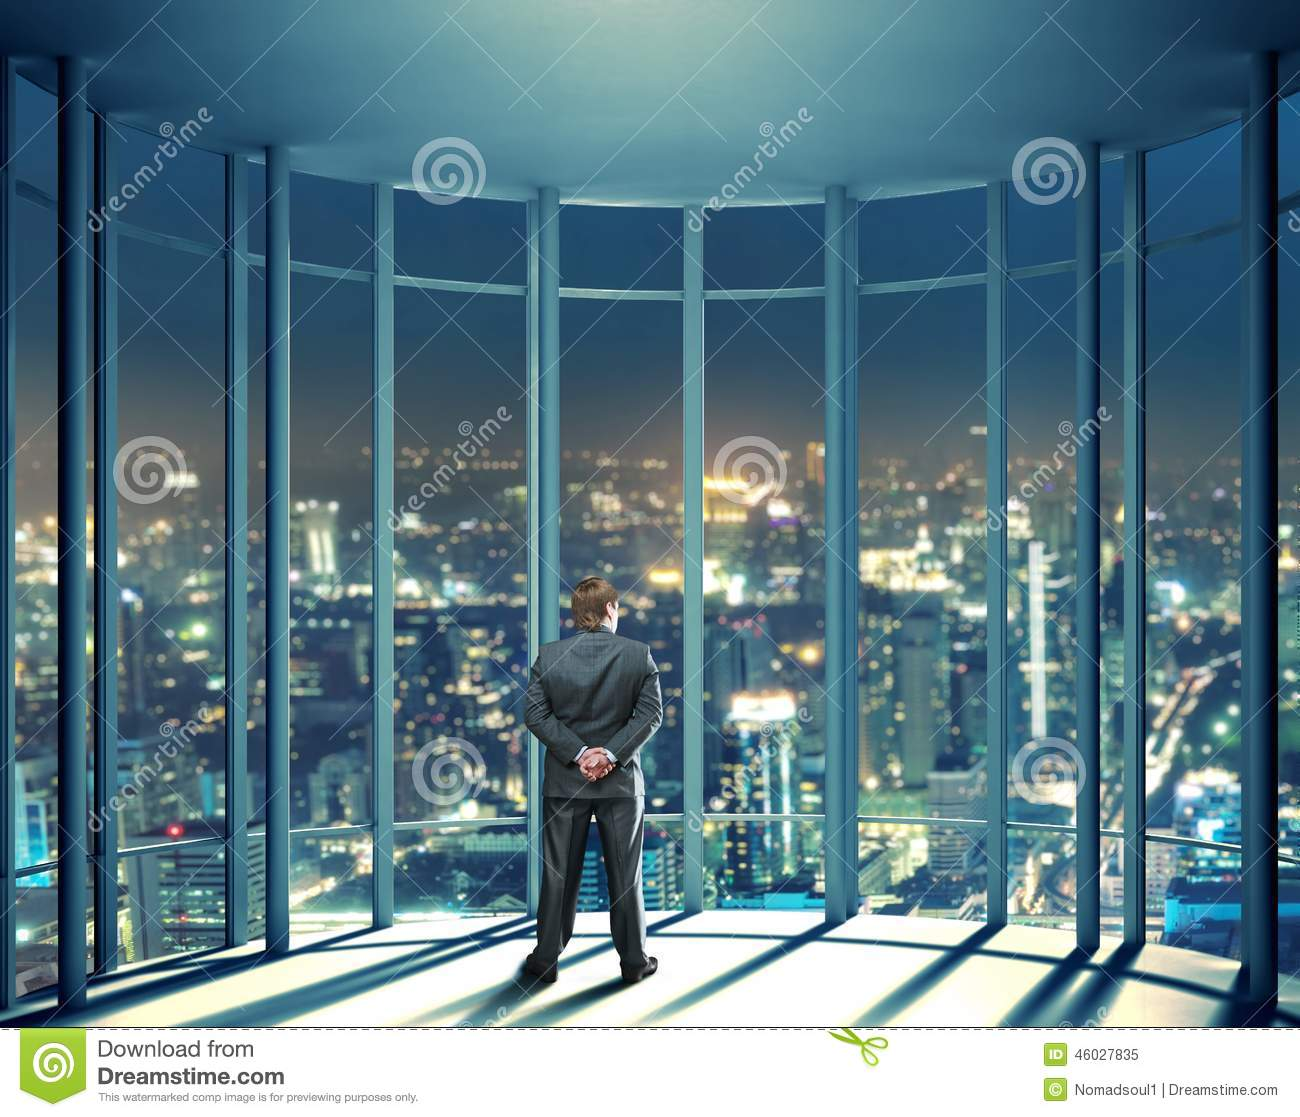 City Glass Windows : Night view of buildings and man from glass window stock